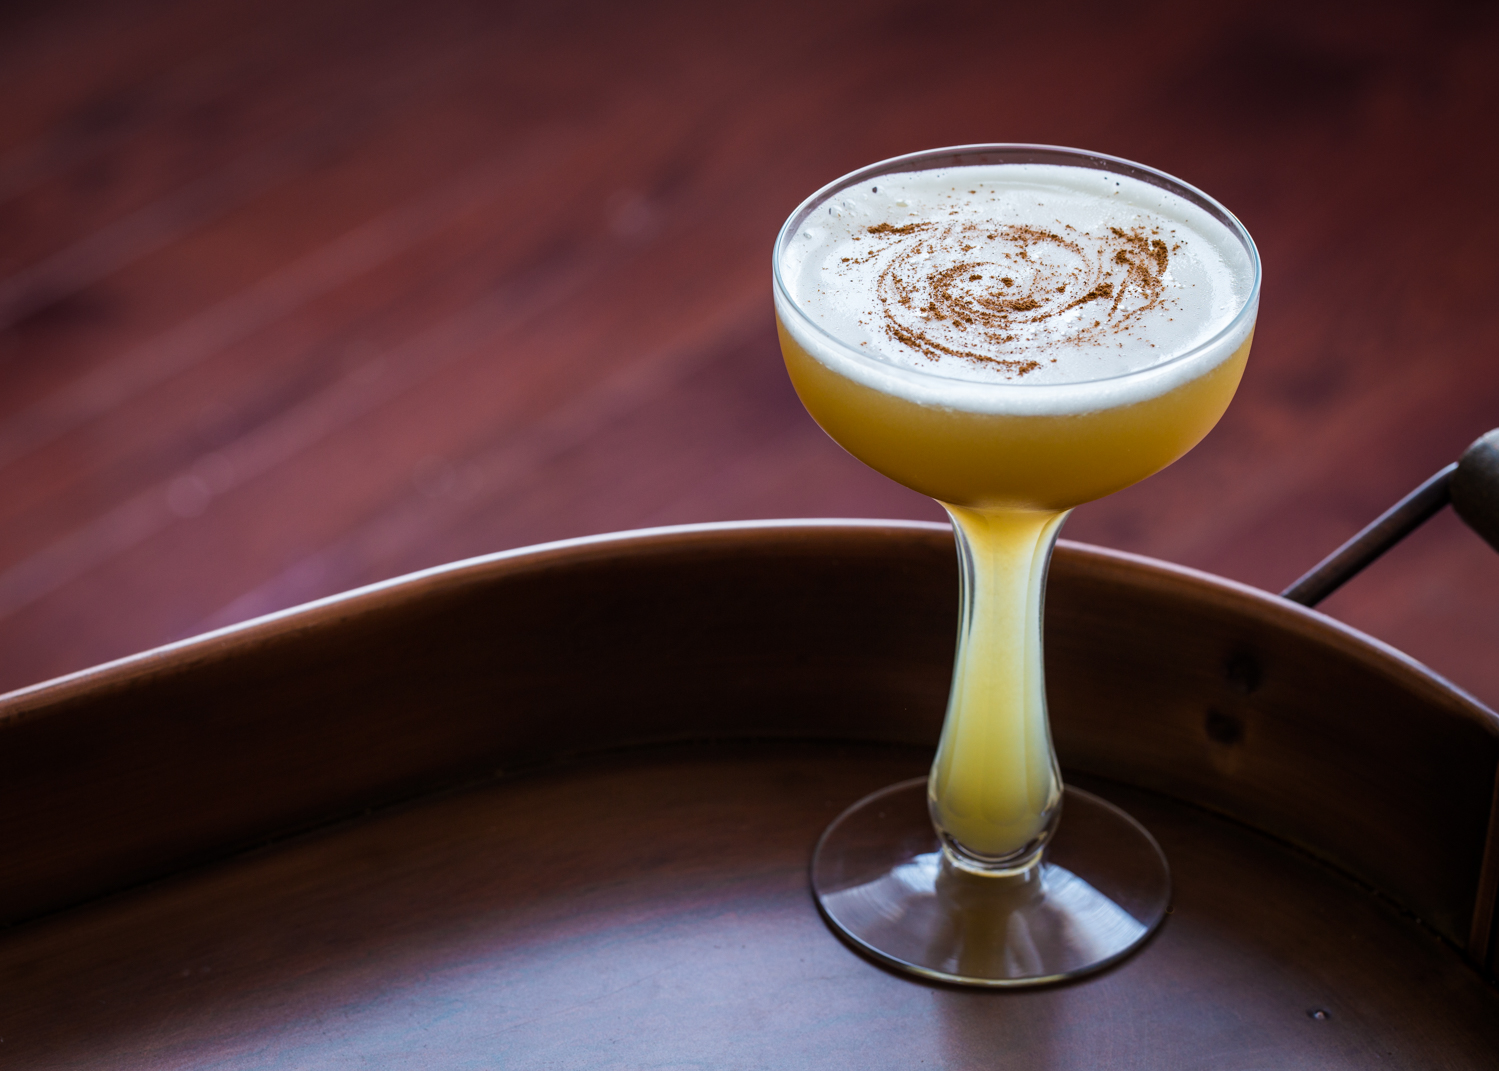 Autumn Sour is a crisp Fall cocktail infused with the pure flavor of cinnamon